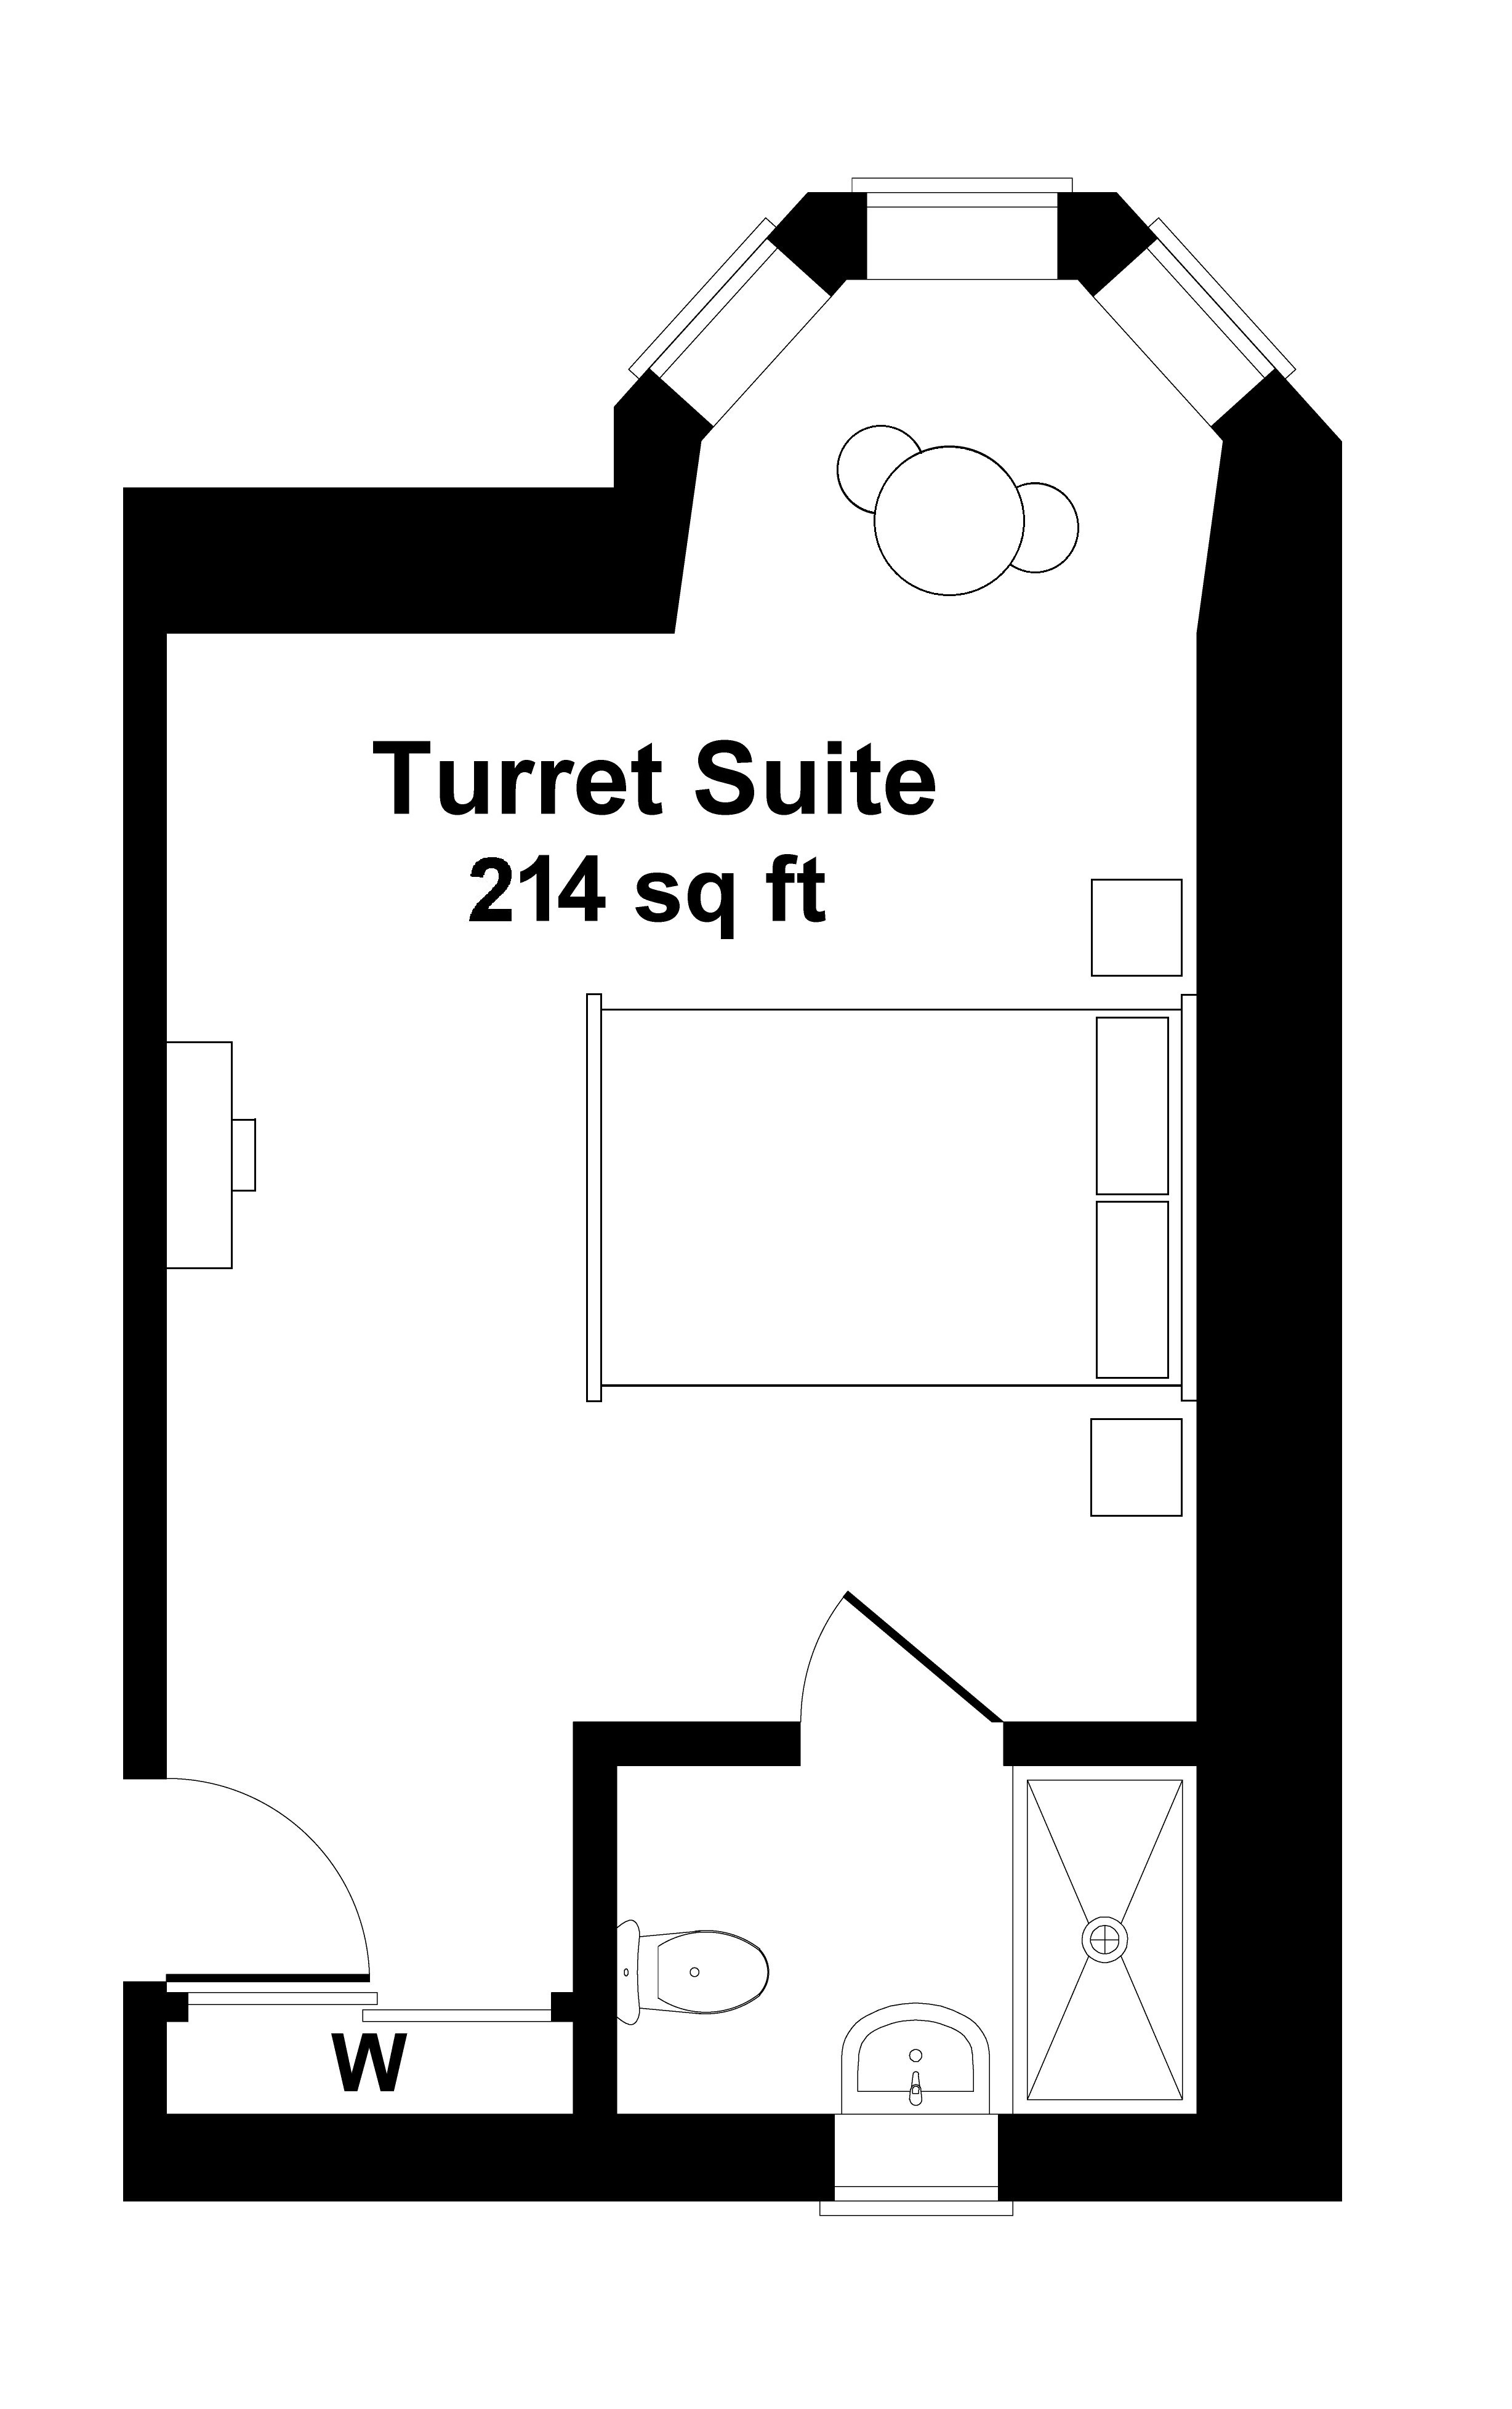 Turret Suite Floor Plan.jpg